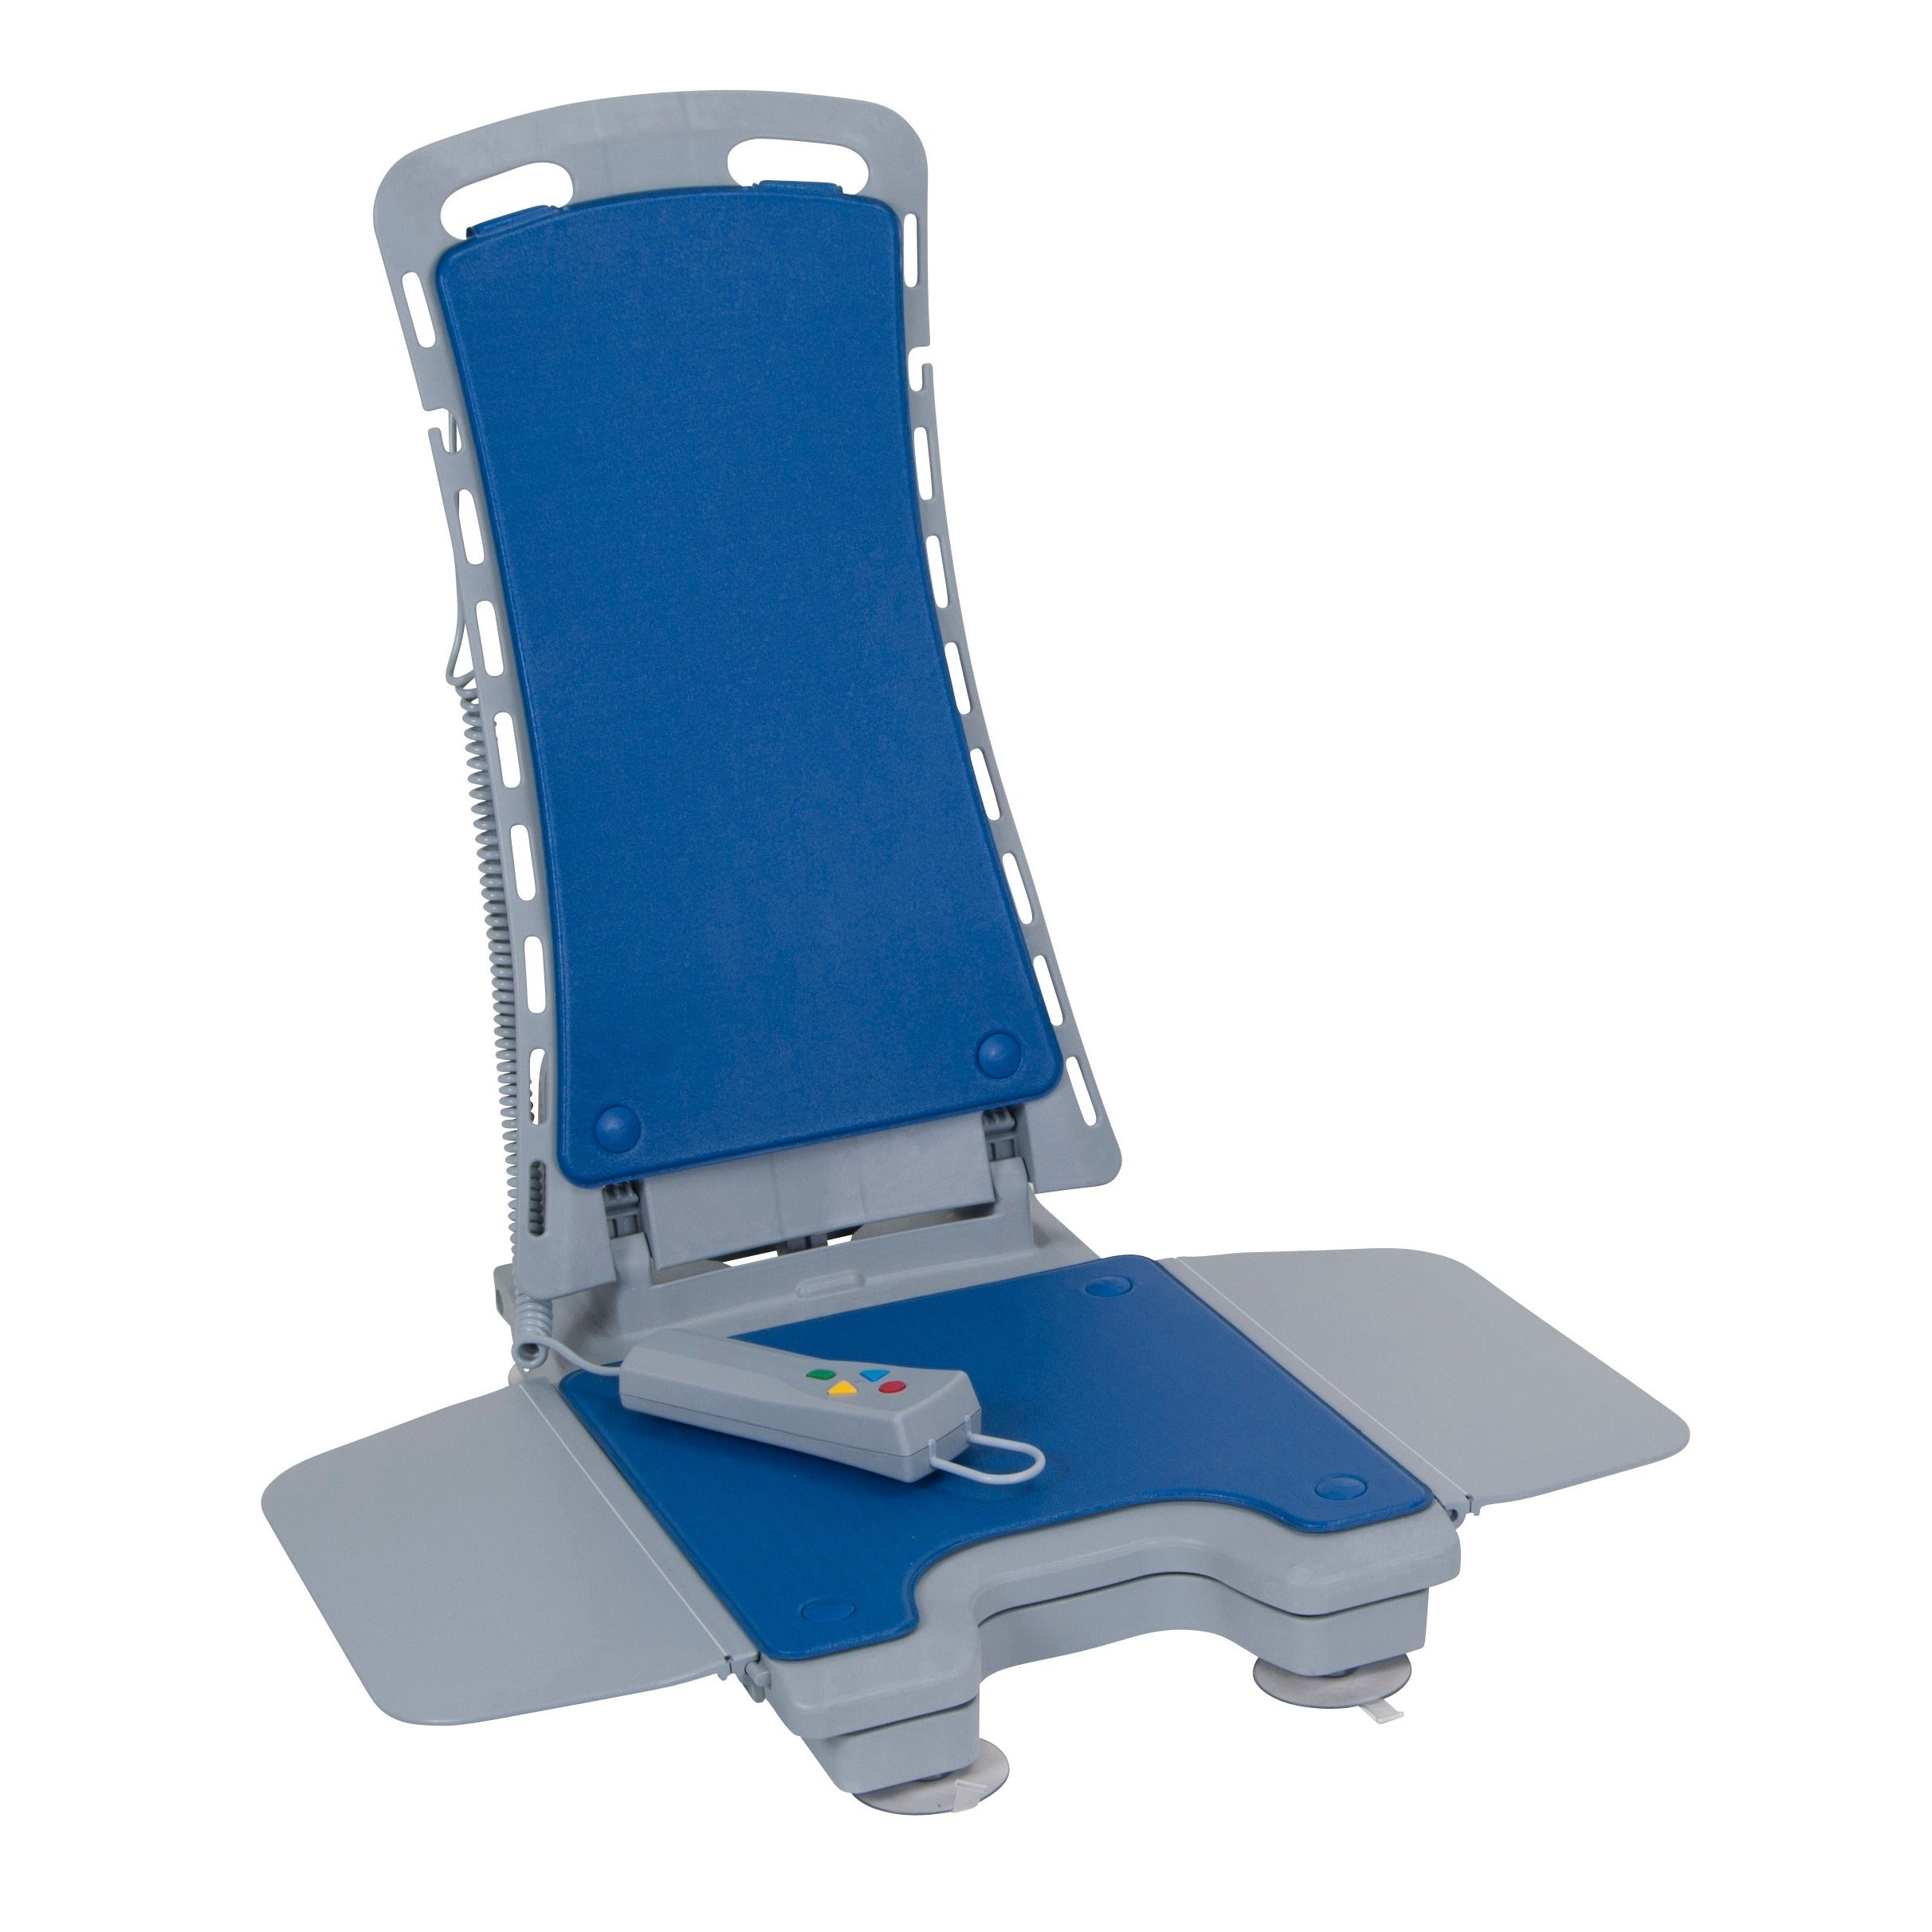 Blue Whisper Ultra Quiet Bathtub Lift - Free Shipping Today ...